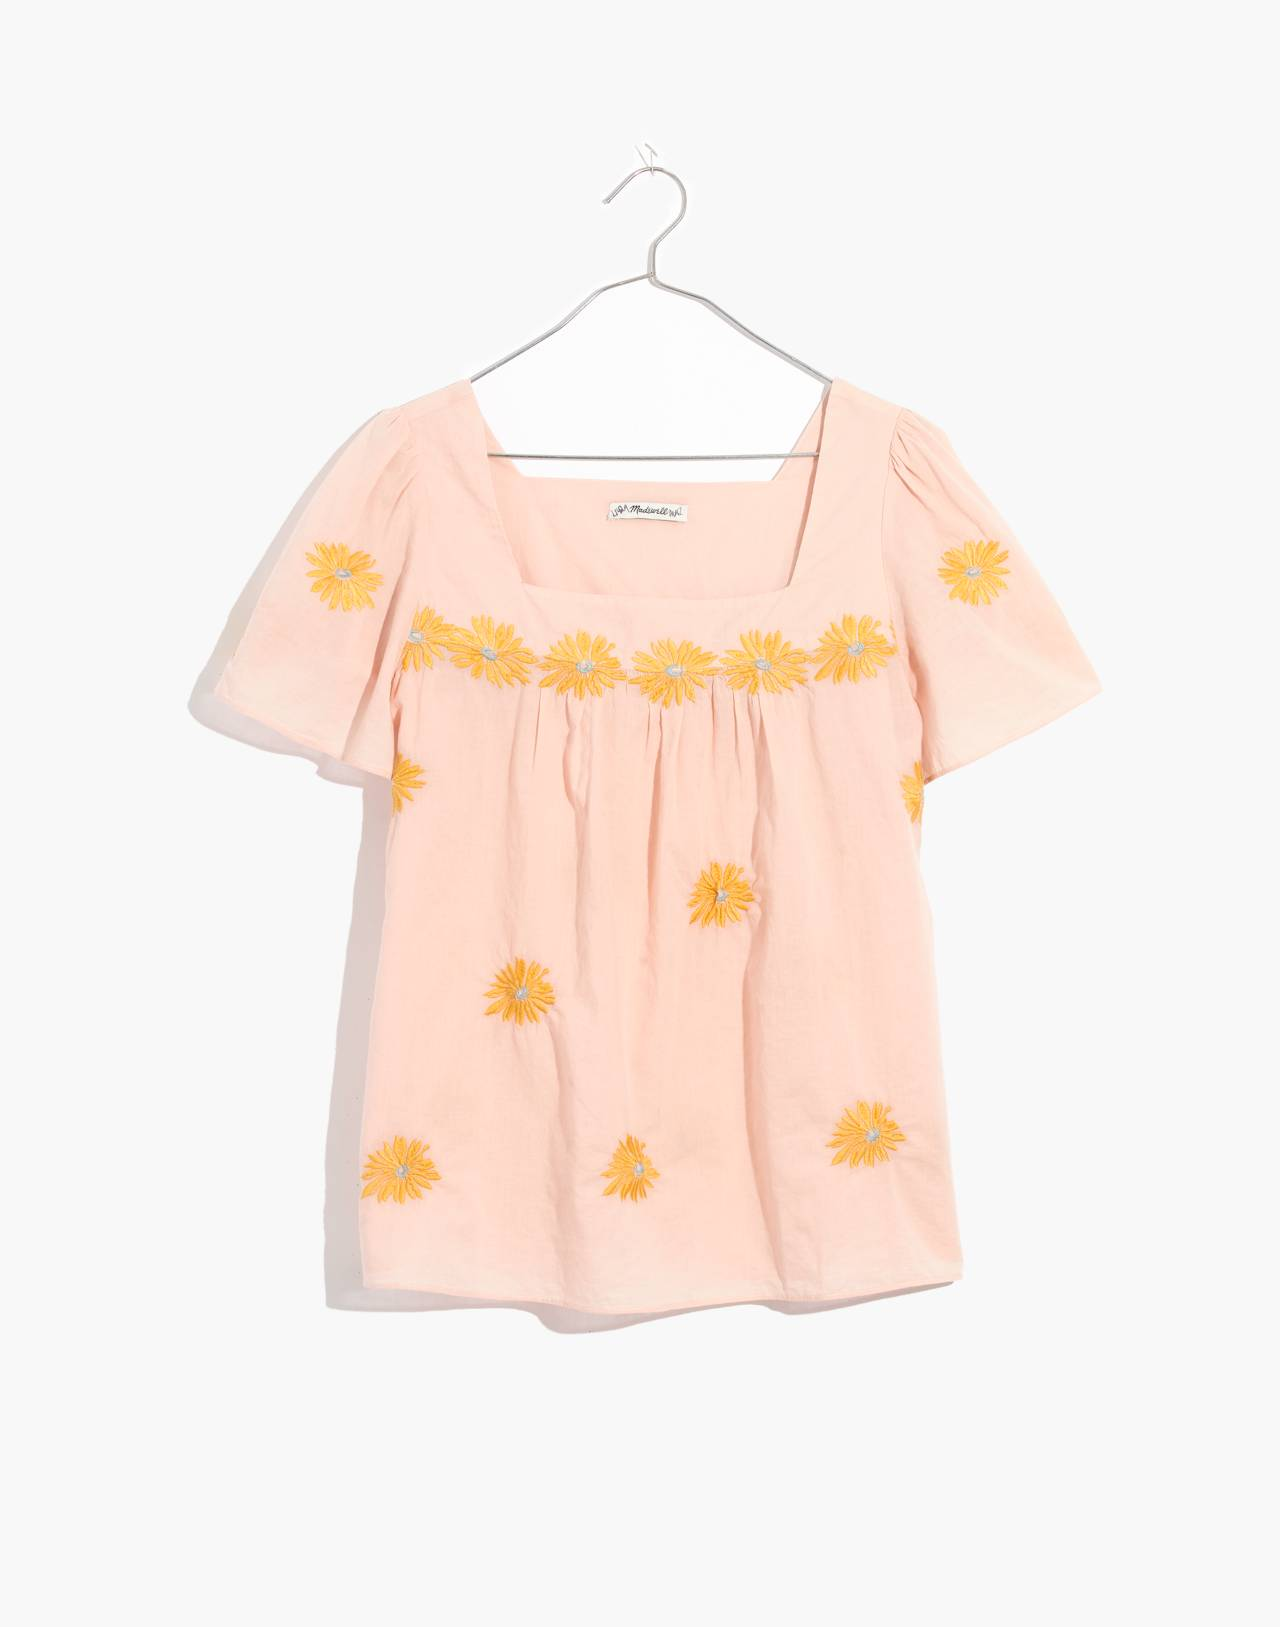 Floral Embroidered Butterfly Top in bashful blush image 1